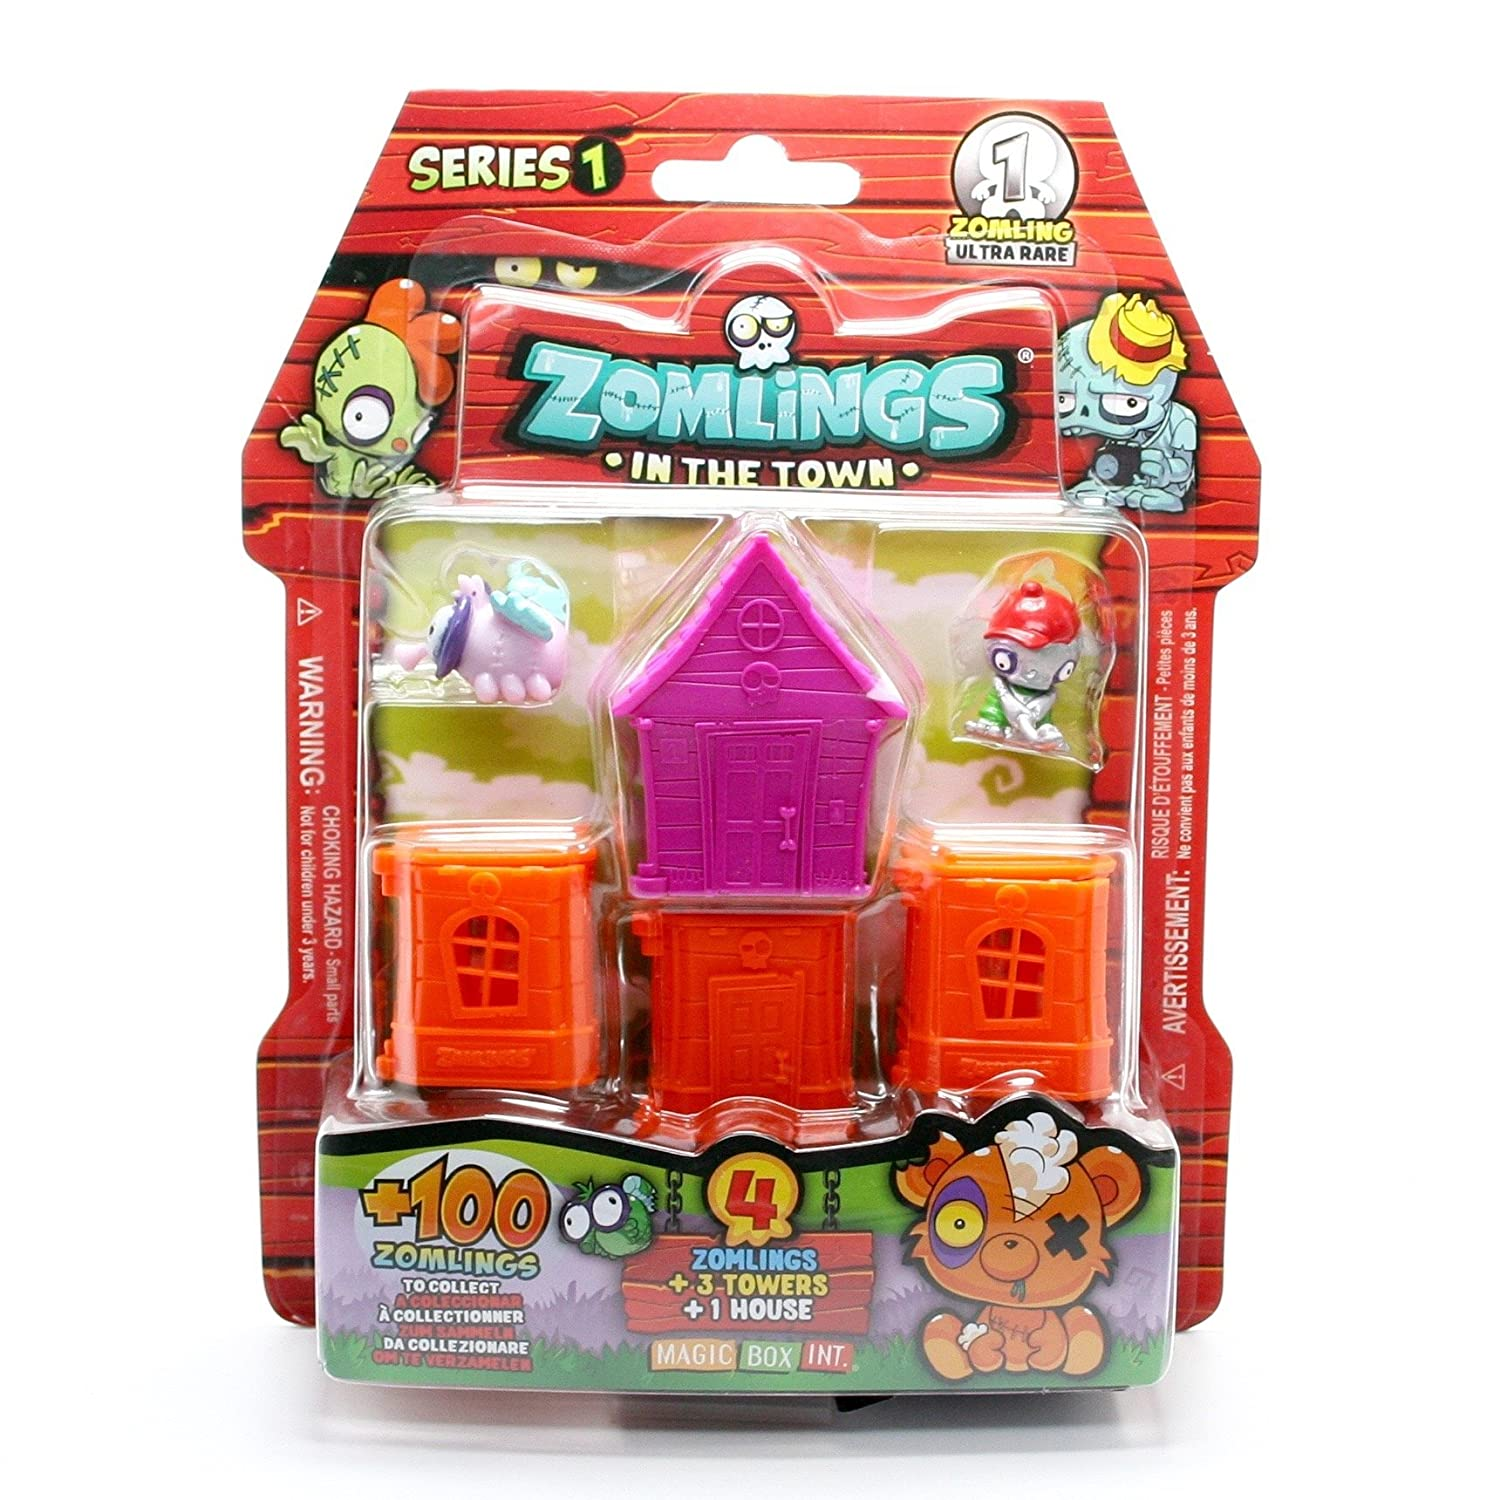 In The Town Series 1 Blister Pack with 1 PURPLE Zomlings House /& 3 ORANGE Zomlings Towers 4 ZOMLINGS